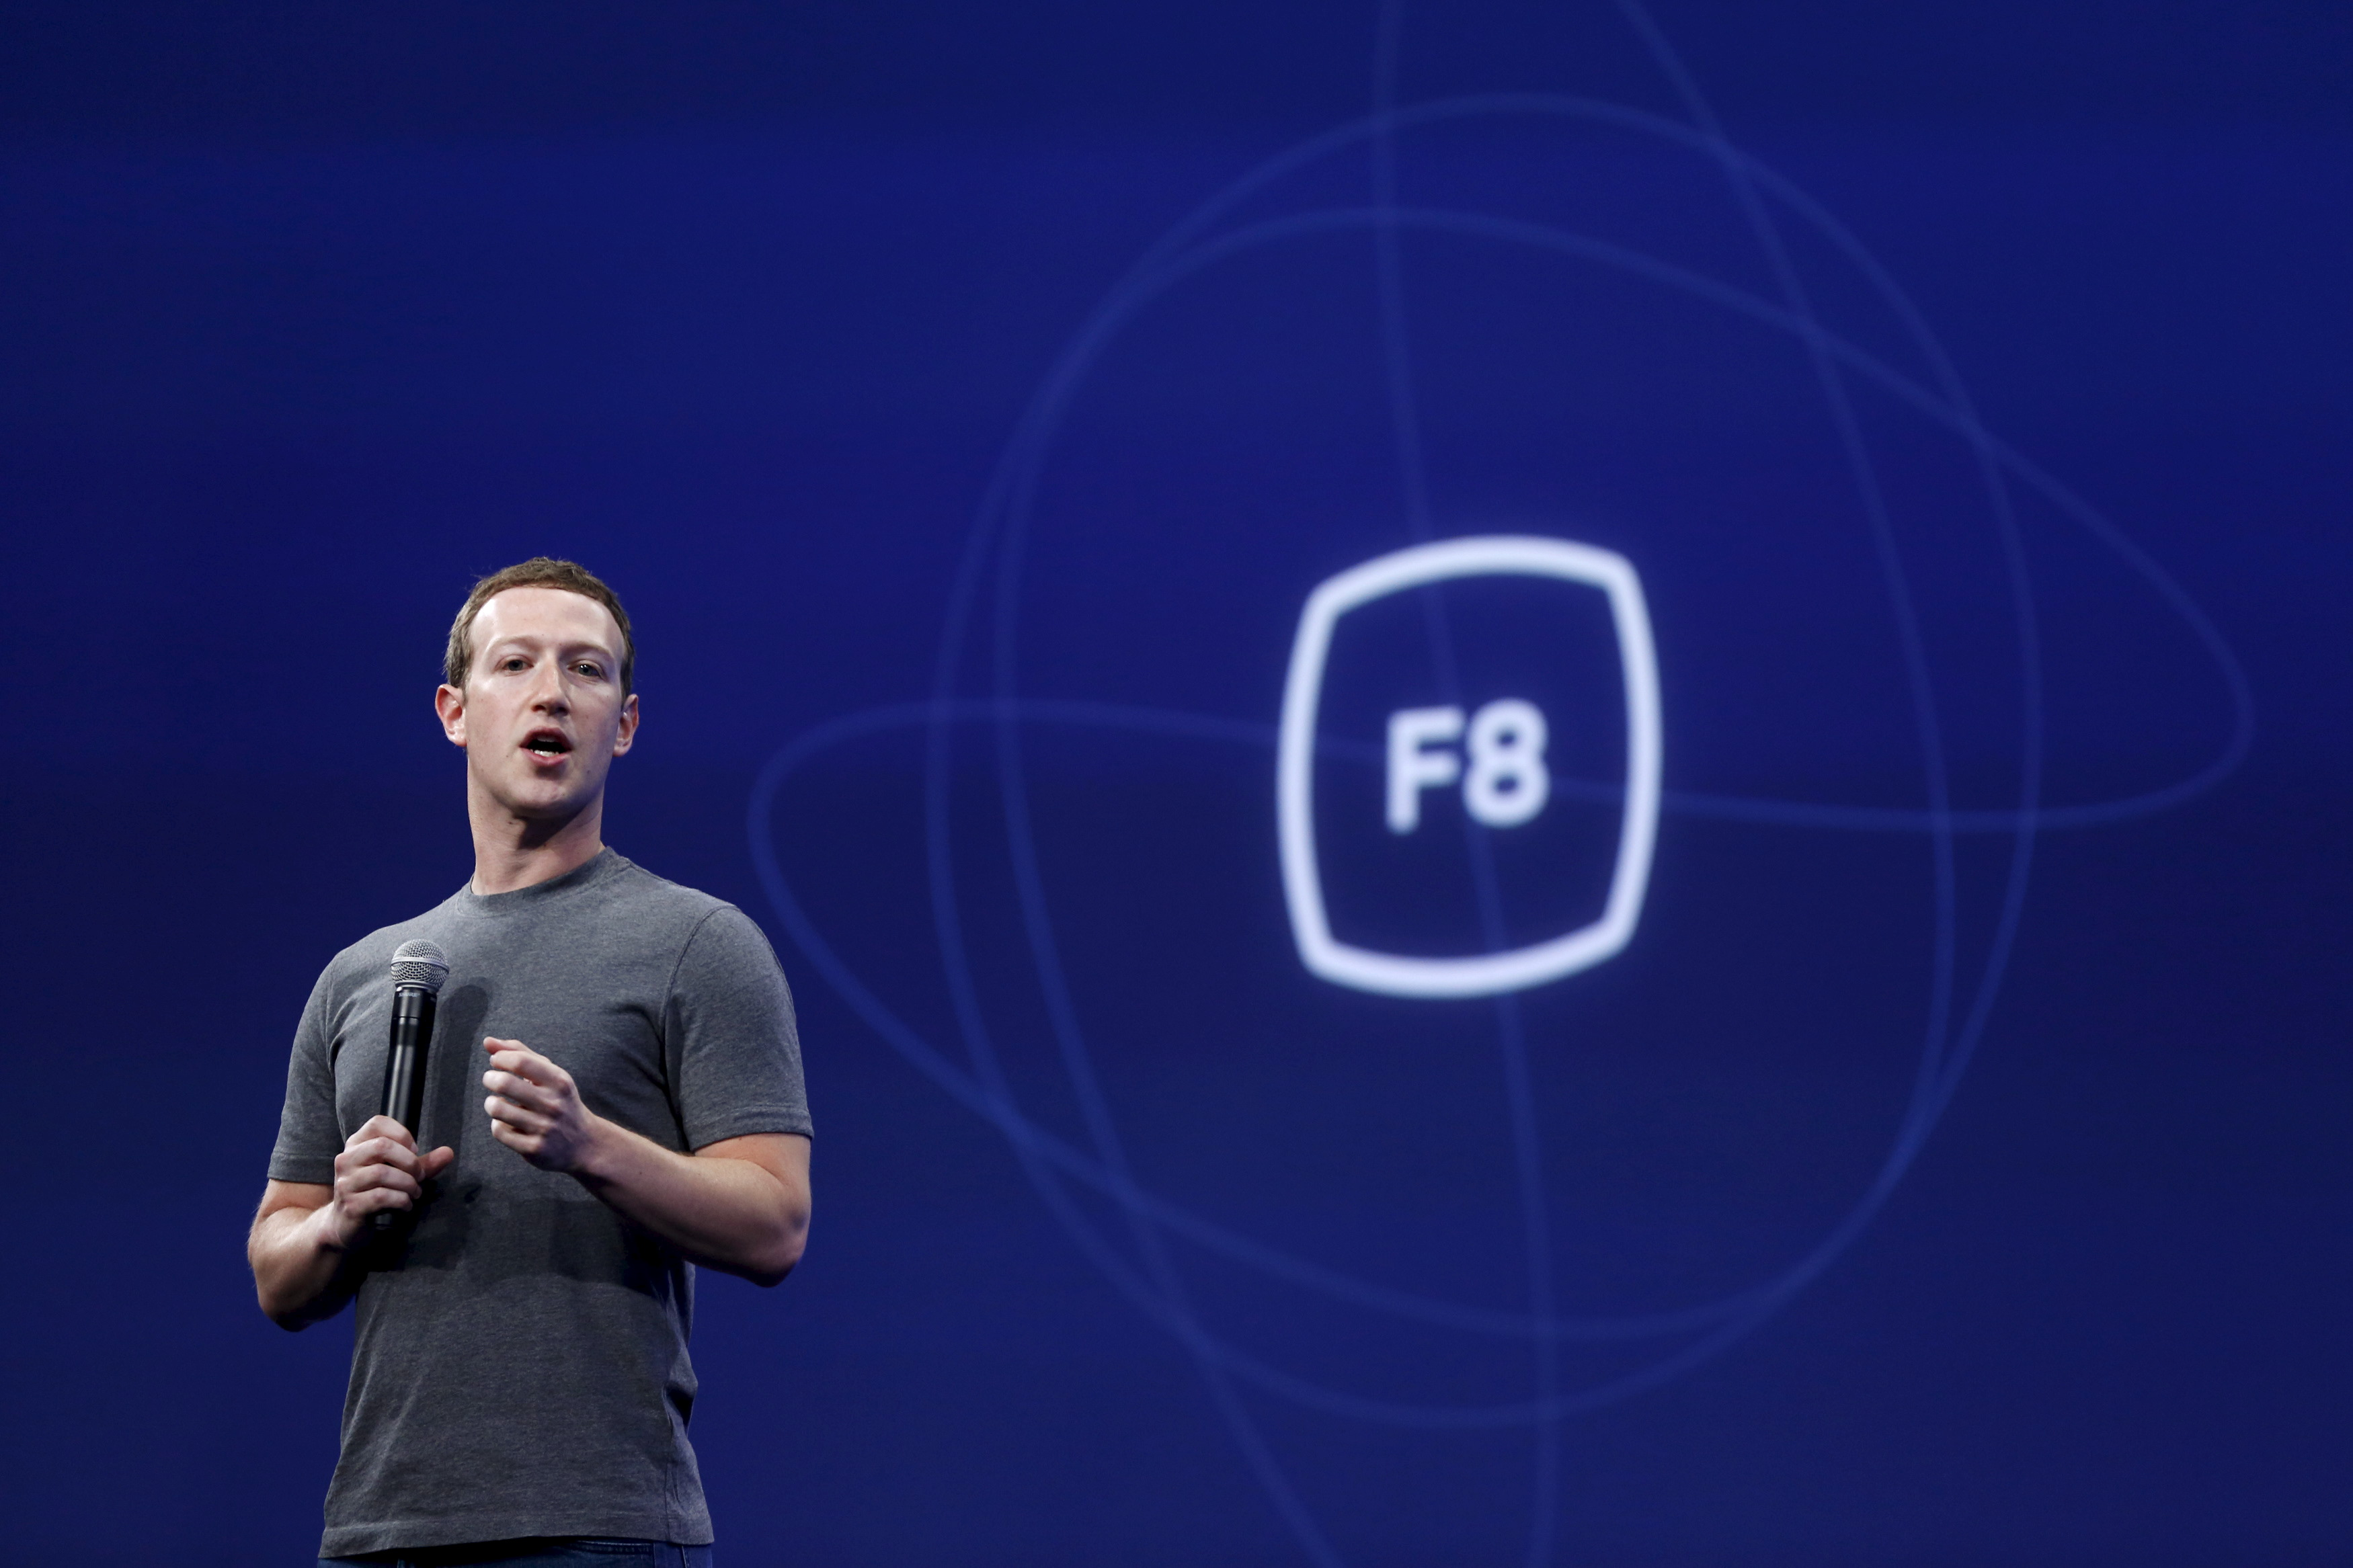 Facebook CEO Mark Zuckerberg speaks during his keynote address at Facebook F8 in San Francisco, California March 25, 2015. REUTERS/Robert Galbraith-GF10000038116